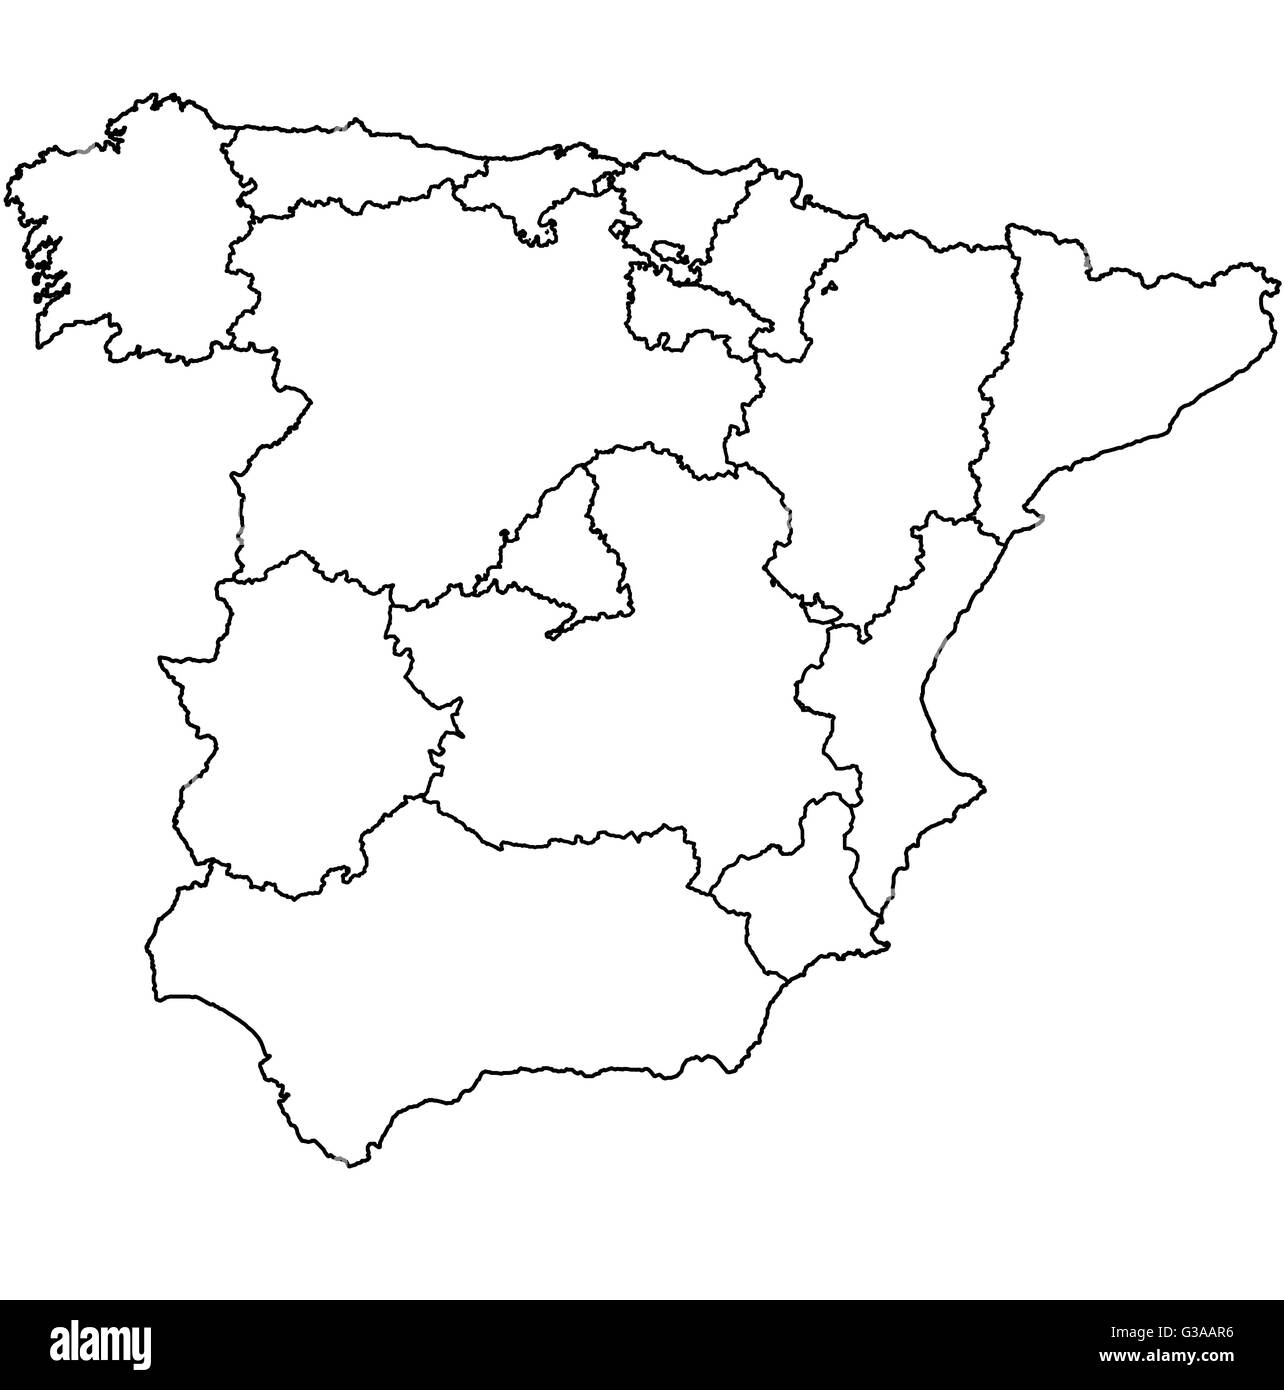 regions of spain on administration map with borders Stock ...